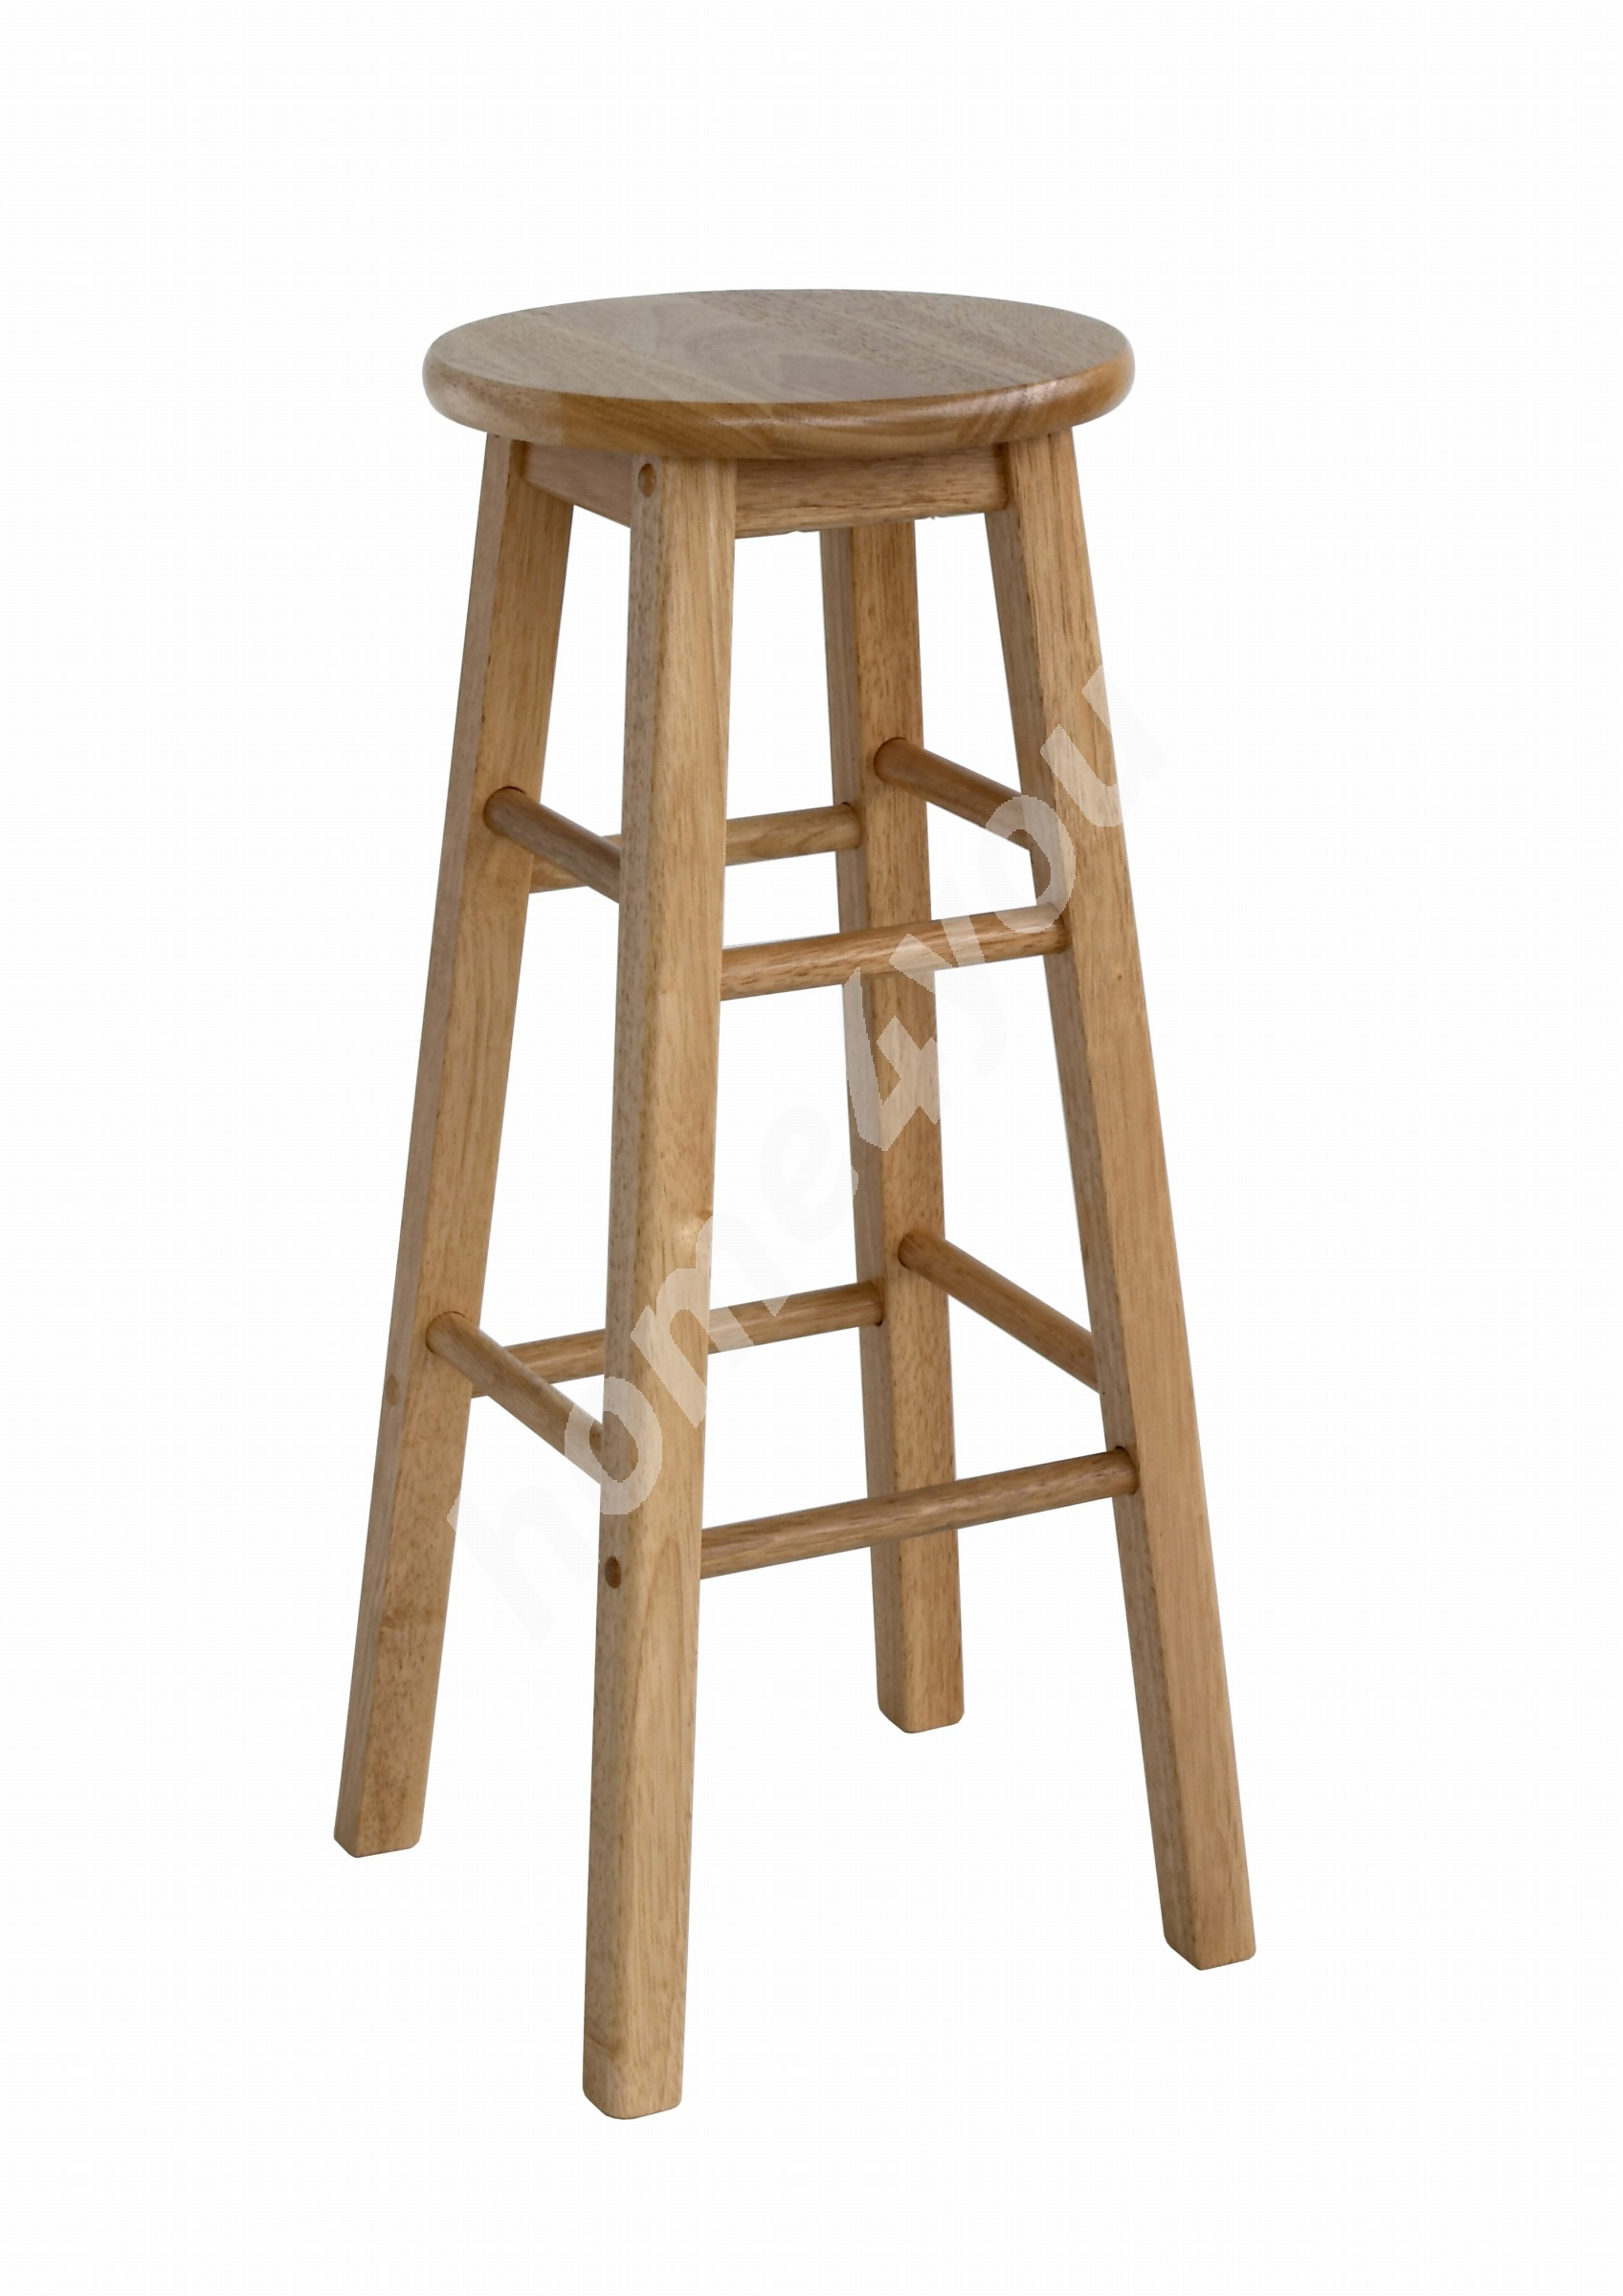 Bar chair PROMO D30xH74cm, wood: rubber wood, finish: lacquered